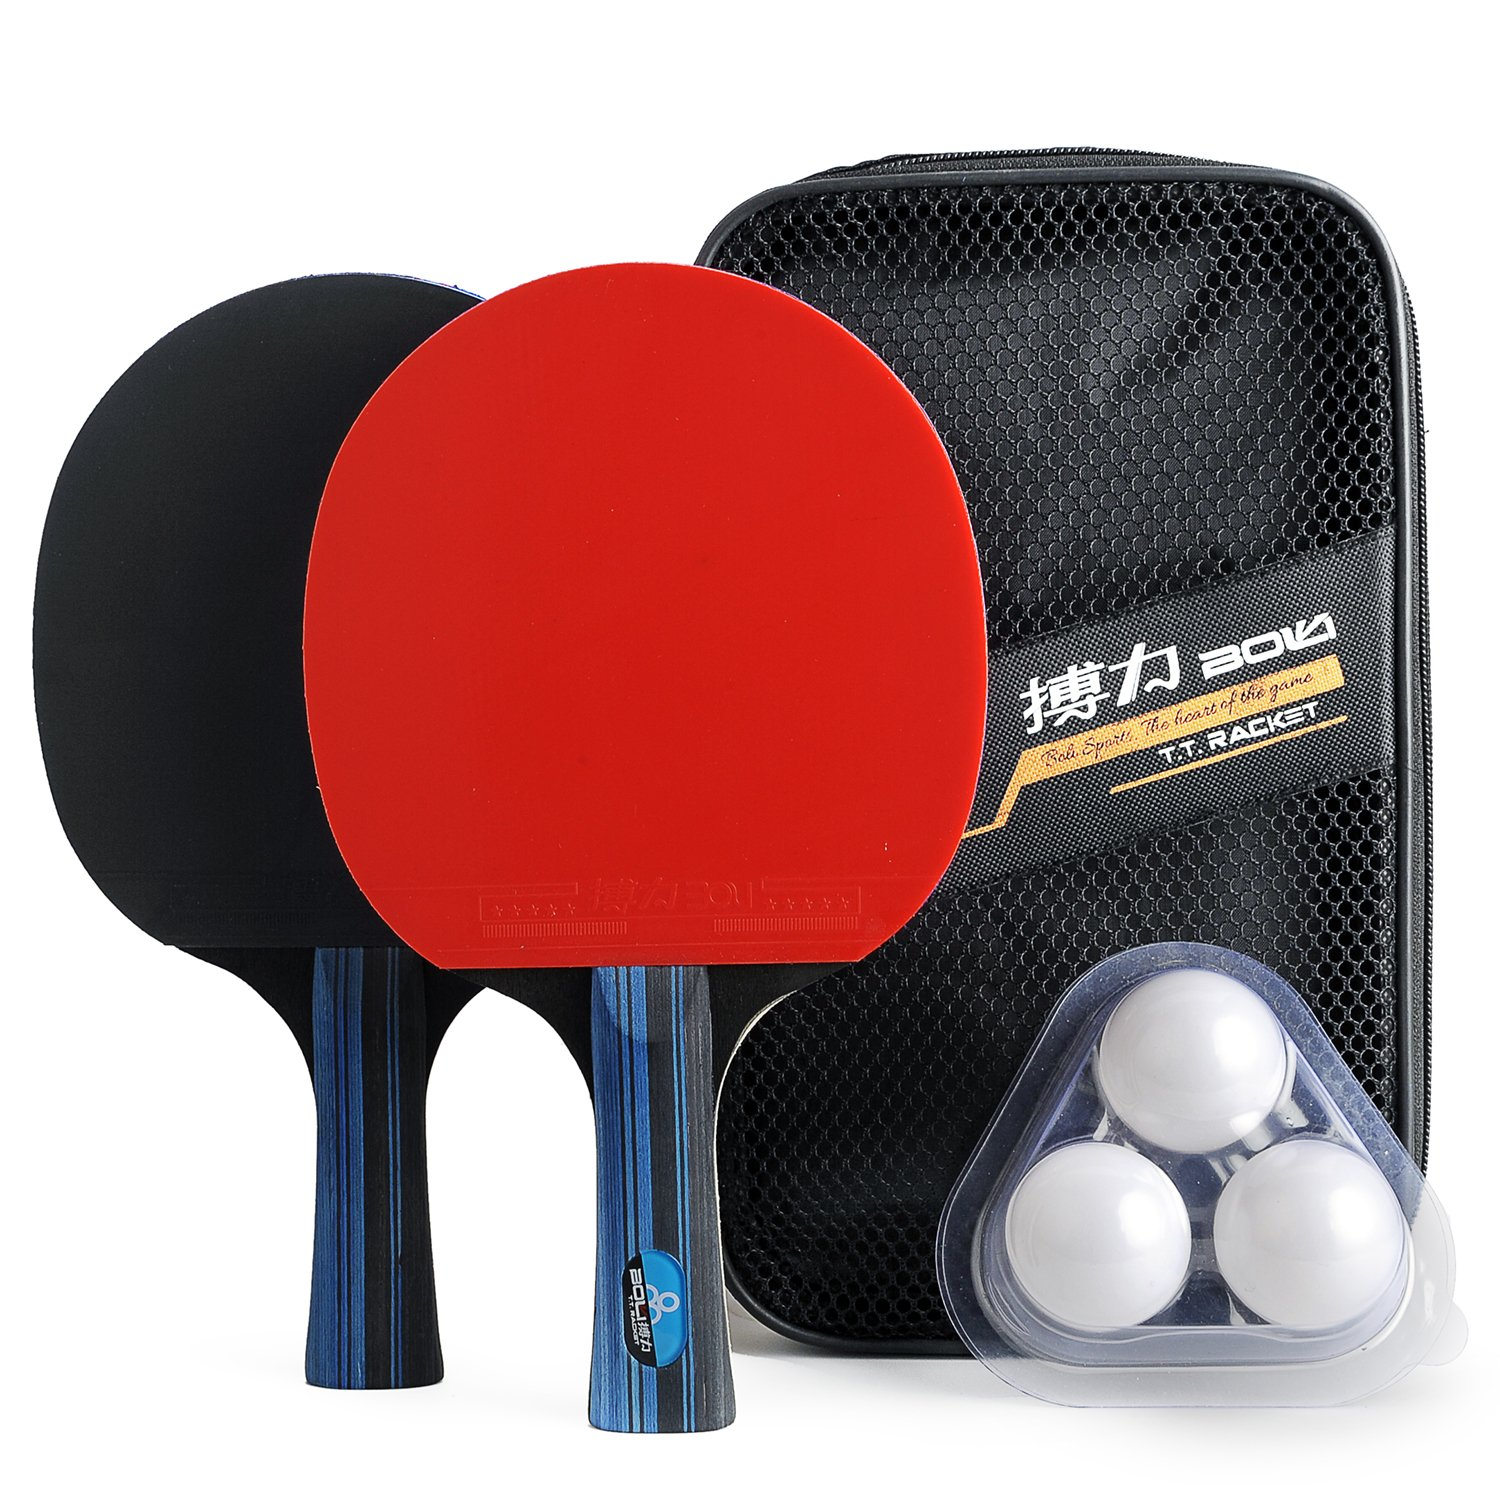 Training Table Tennis/Ping Pong Set - 2 Premium Paddles/Rackets/Bats, 3 Balls and 1 Carrying Case